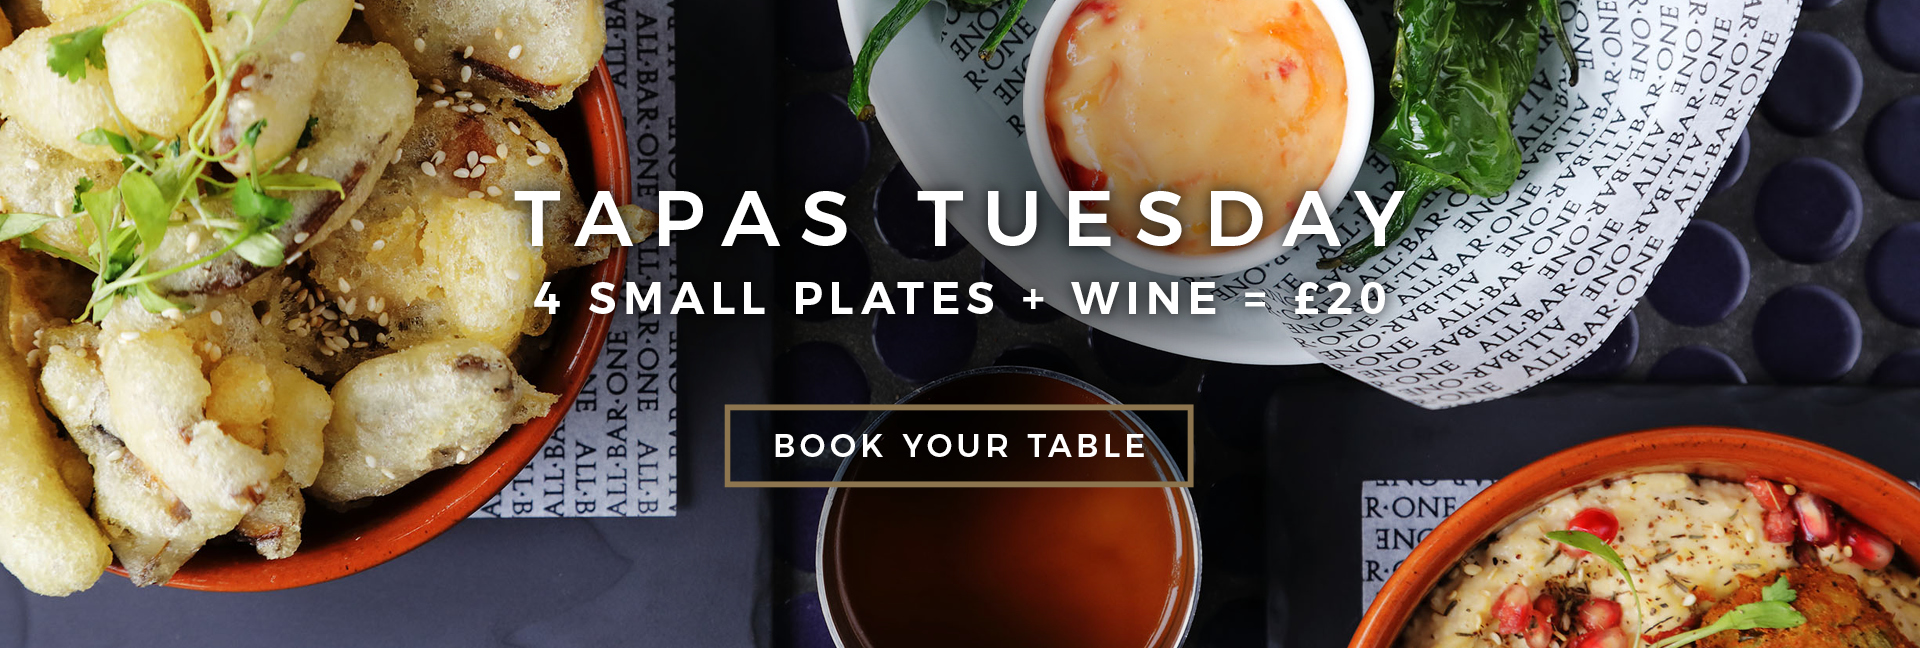 Tapas Tuesday at All Bar One Exchange Edinburgh - Book now